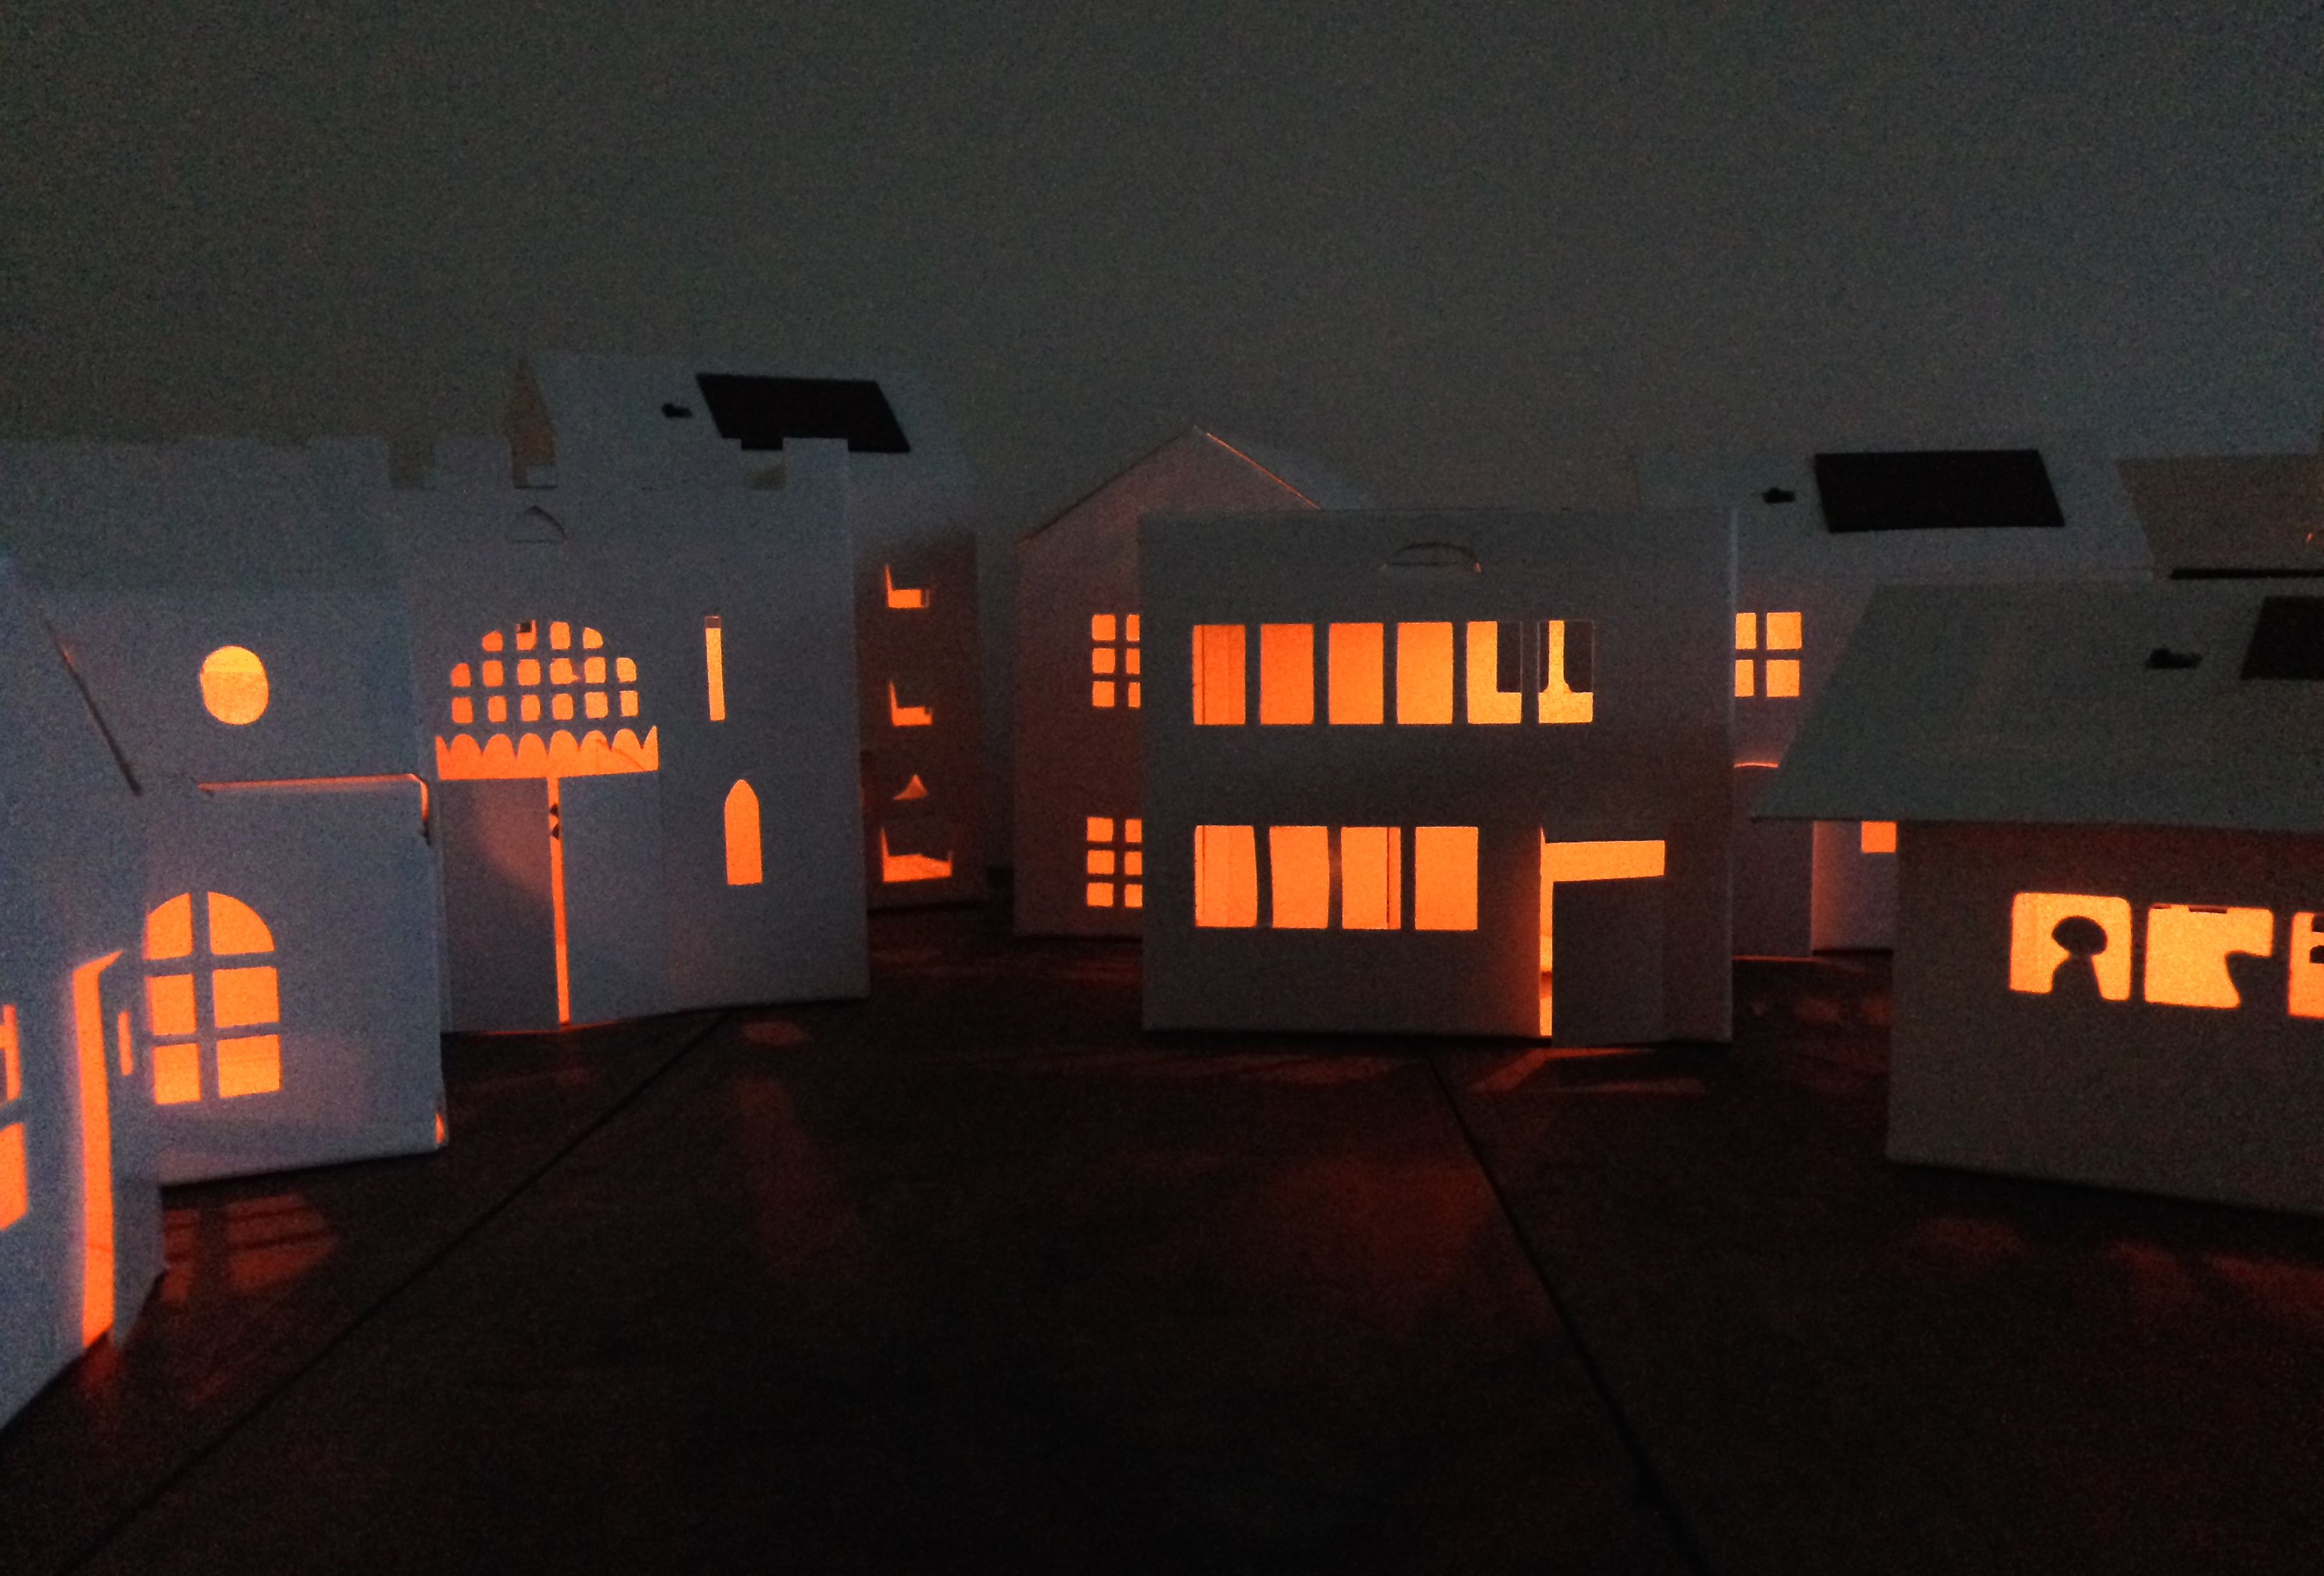 Night lights designs -  Litogami Designs Customizable Paper Night Lights Powered By Solar Energy Learn